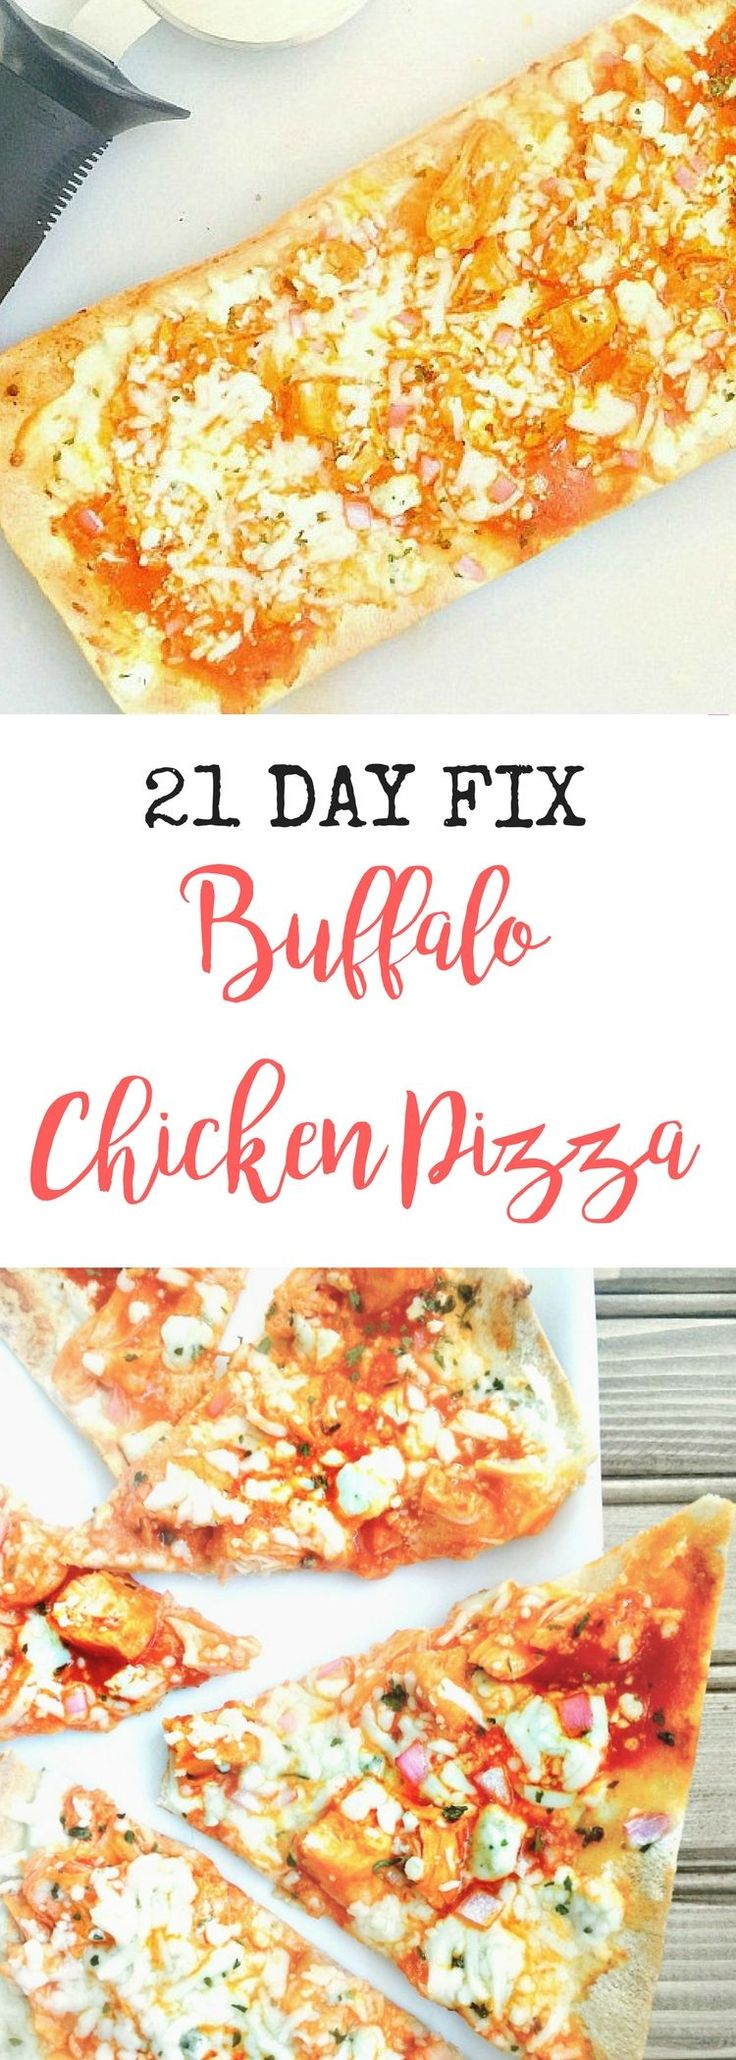 21 Day Fix Buffalo Chicken Pizza